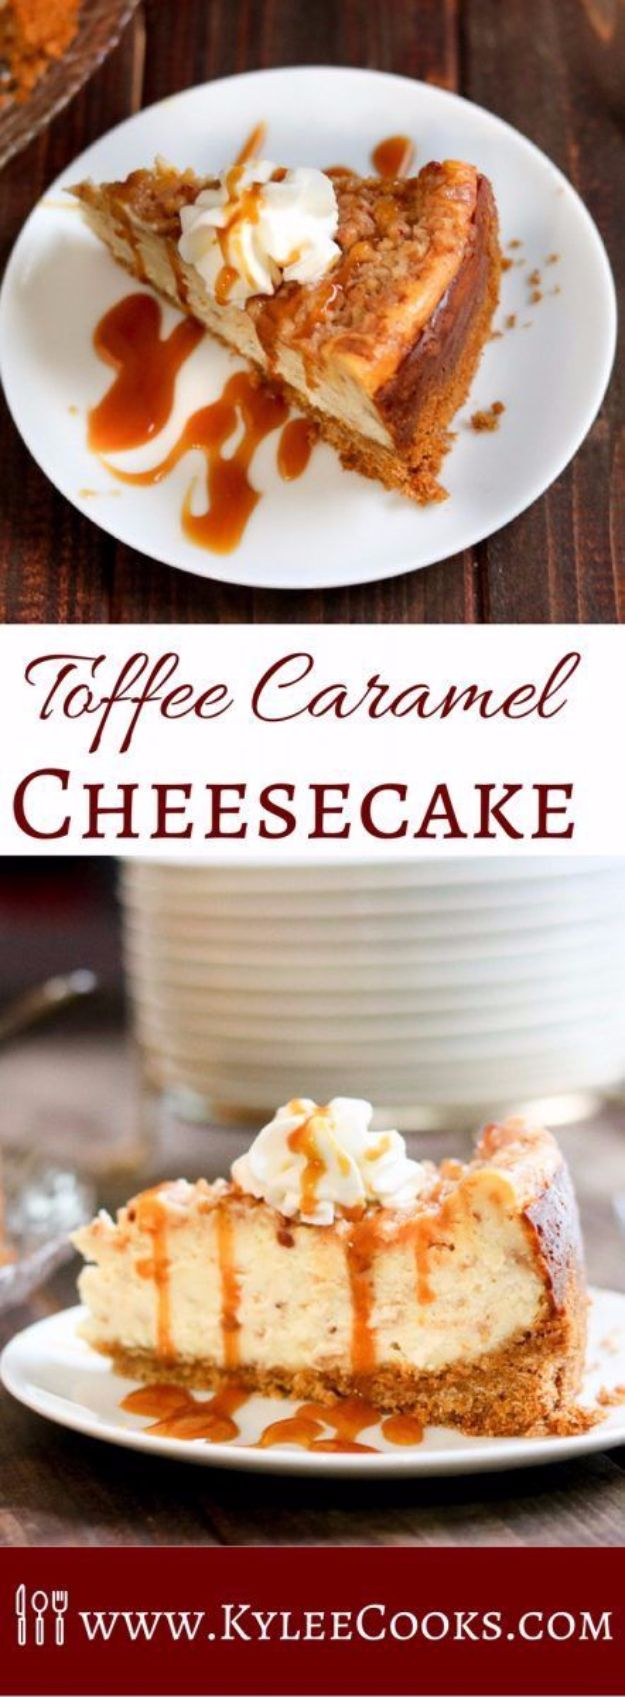 Best Cheesecake Recipes - Toffee Caramel Cheesecake - Easy and Quick Recipe Ideas for Cheesecakes and Desserts - Chocolate, Simple Plain Classic, New York, Mini, Oreo, Lemon, Raspberry and Quick No Bake - Step by Step Instructions and Tutorials for Yummy Dessert